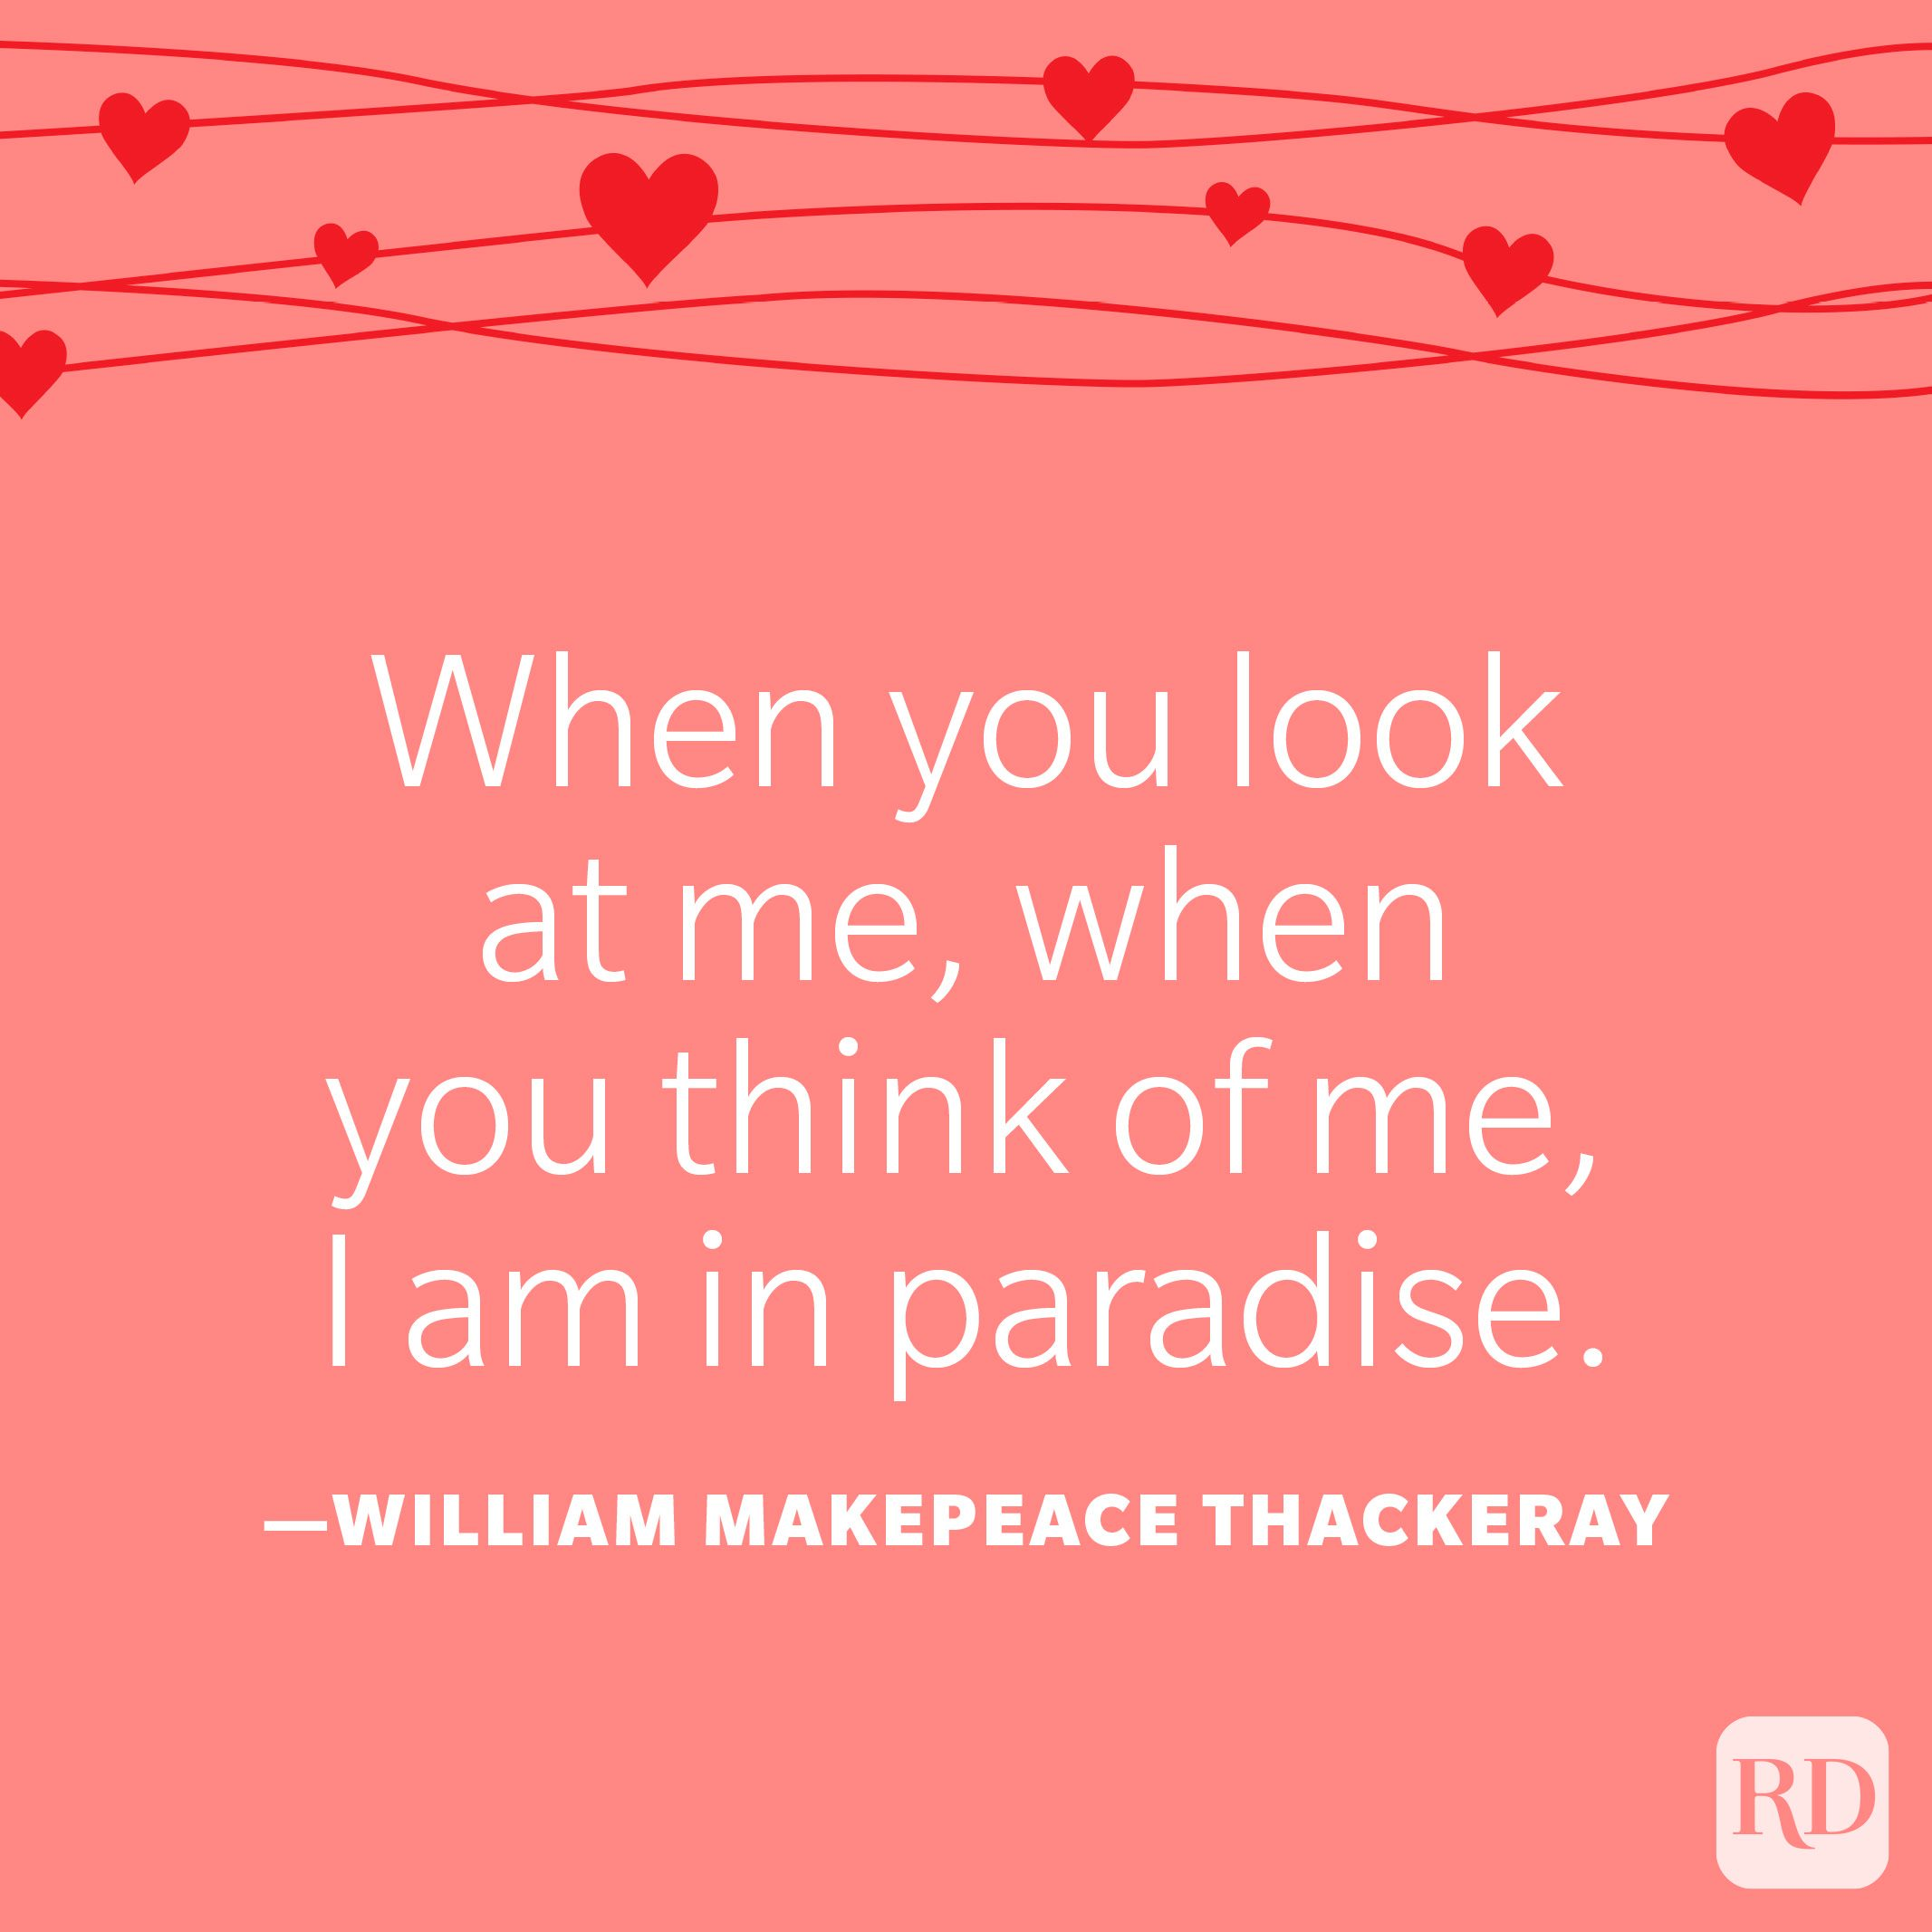 """""""When you look at me, when you think of me, I am in paradise.""""—William Makepeace Thackeray"""